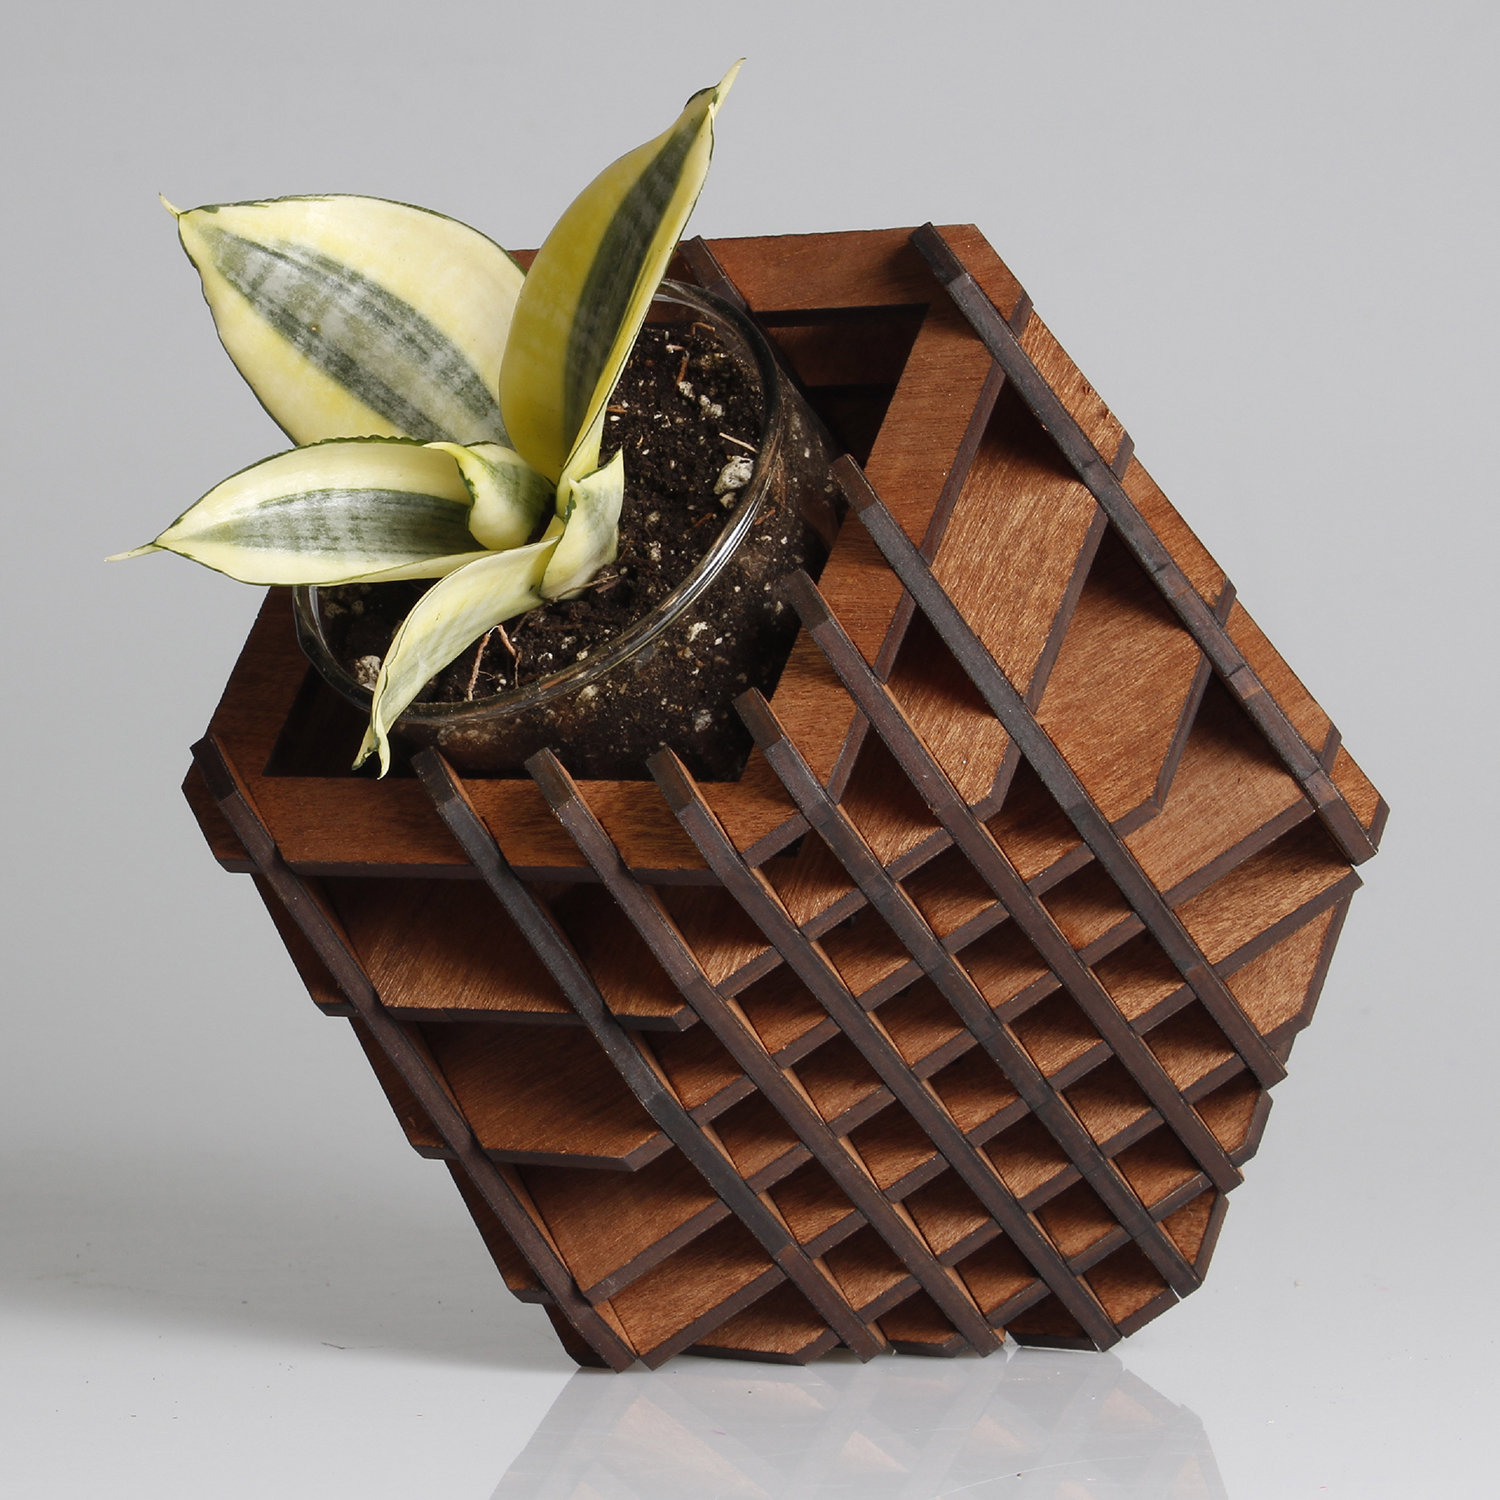 H-02 / 7 Positions Planter Planter by Hexagón Design